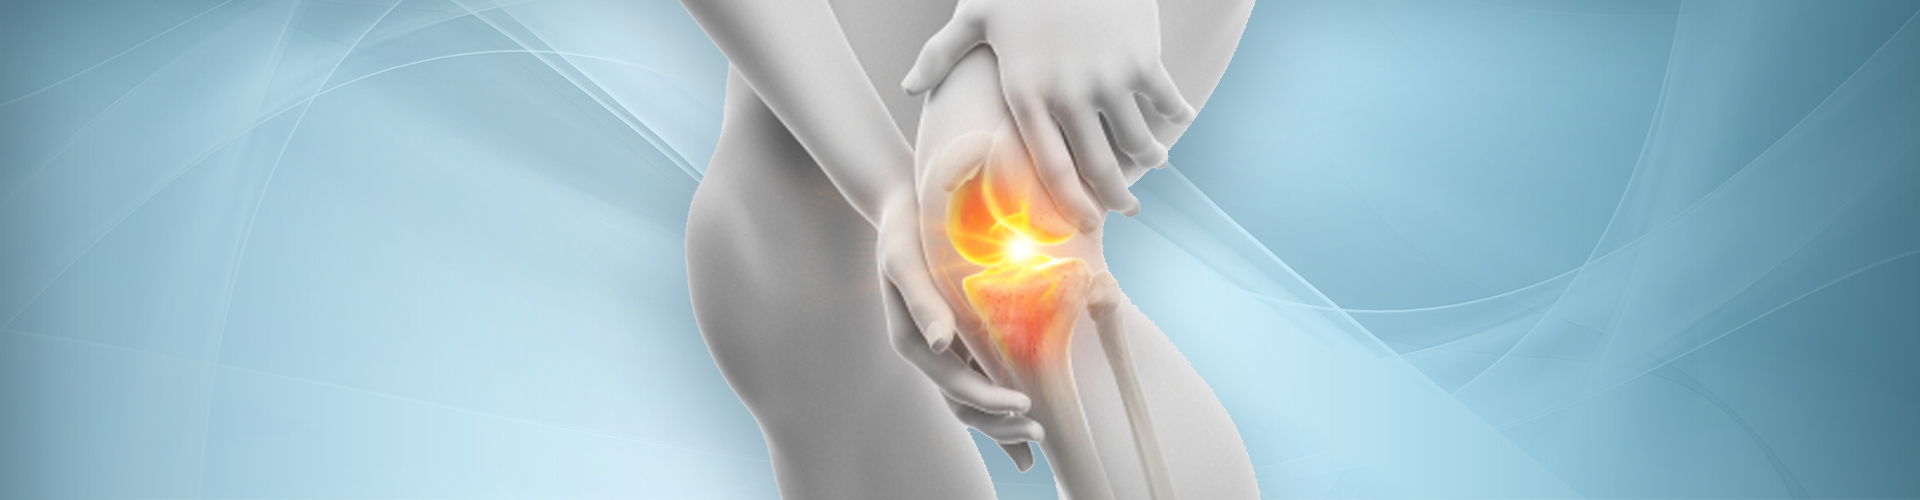 Struggling with knee pain and searching for a top knee doctor? Our team of Harvard doctors are pain experts and have the latest treatments which avoid surgery.